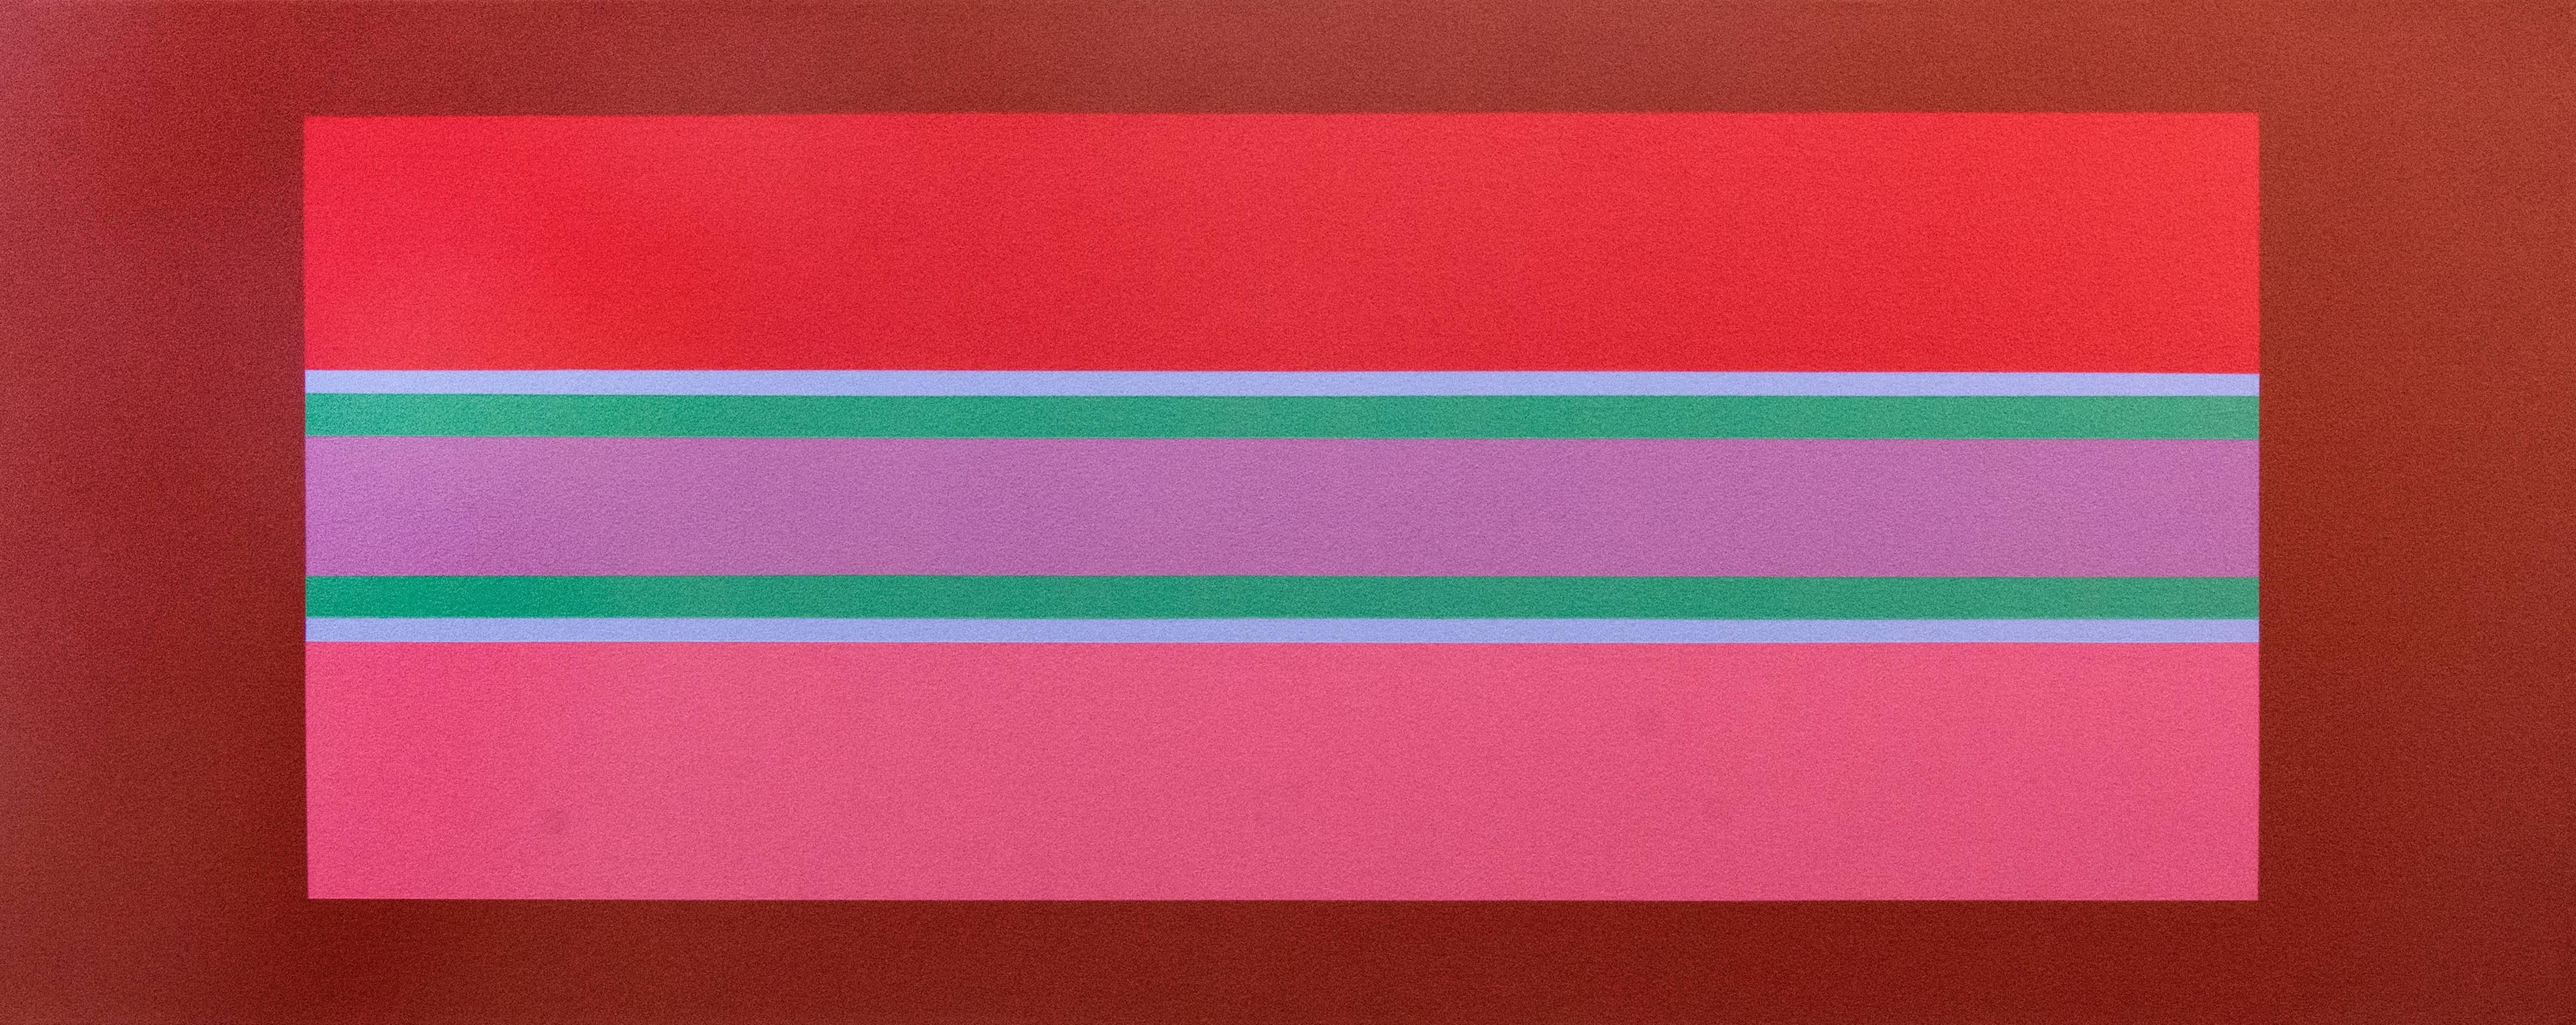 Oasis 4/4 - vivid, colourful geometric abstraction, modernist, acrylic on canvas